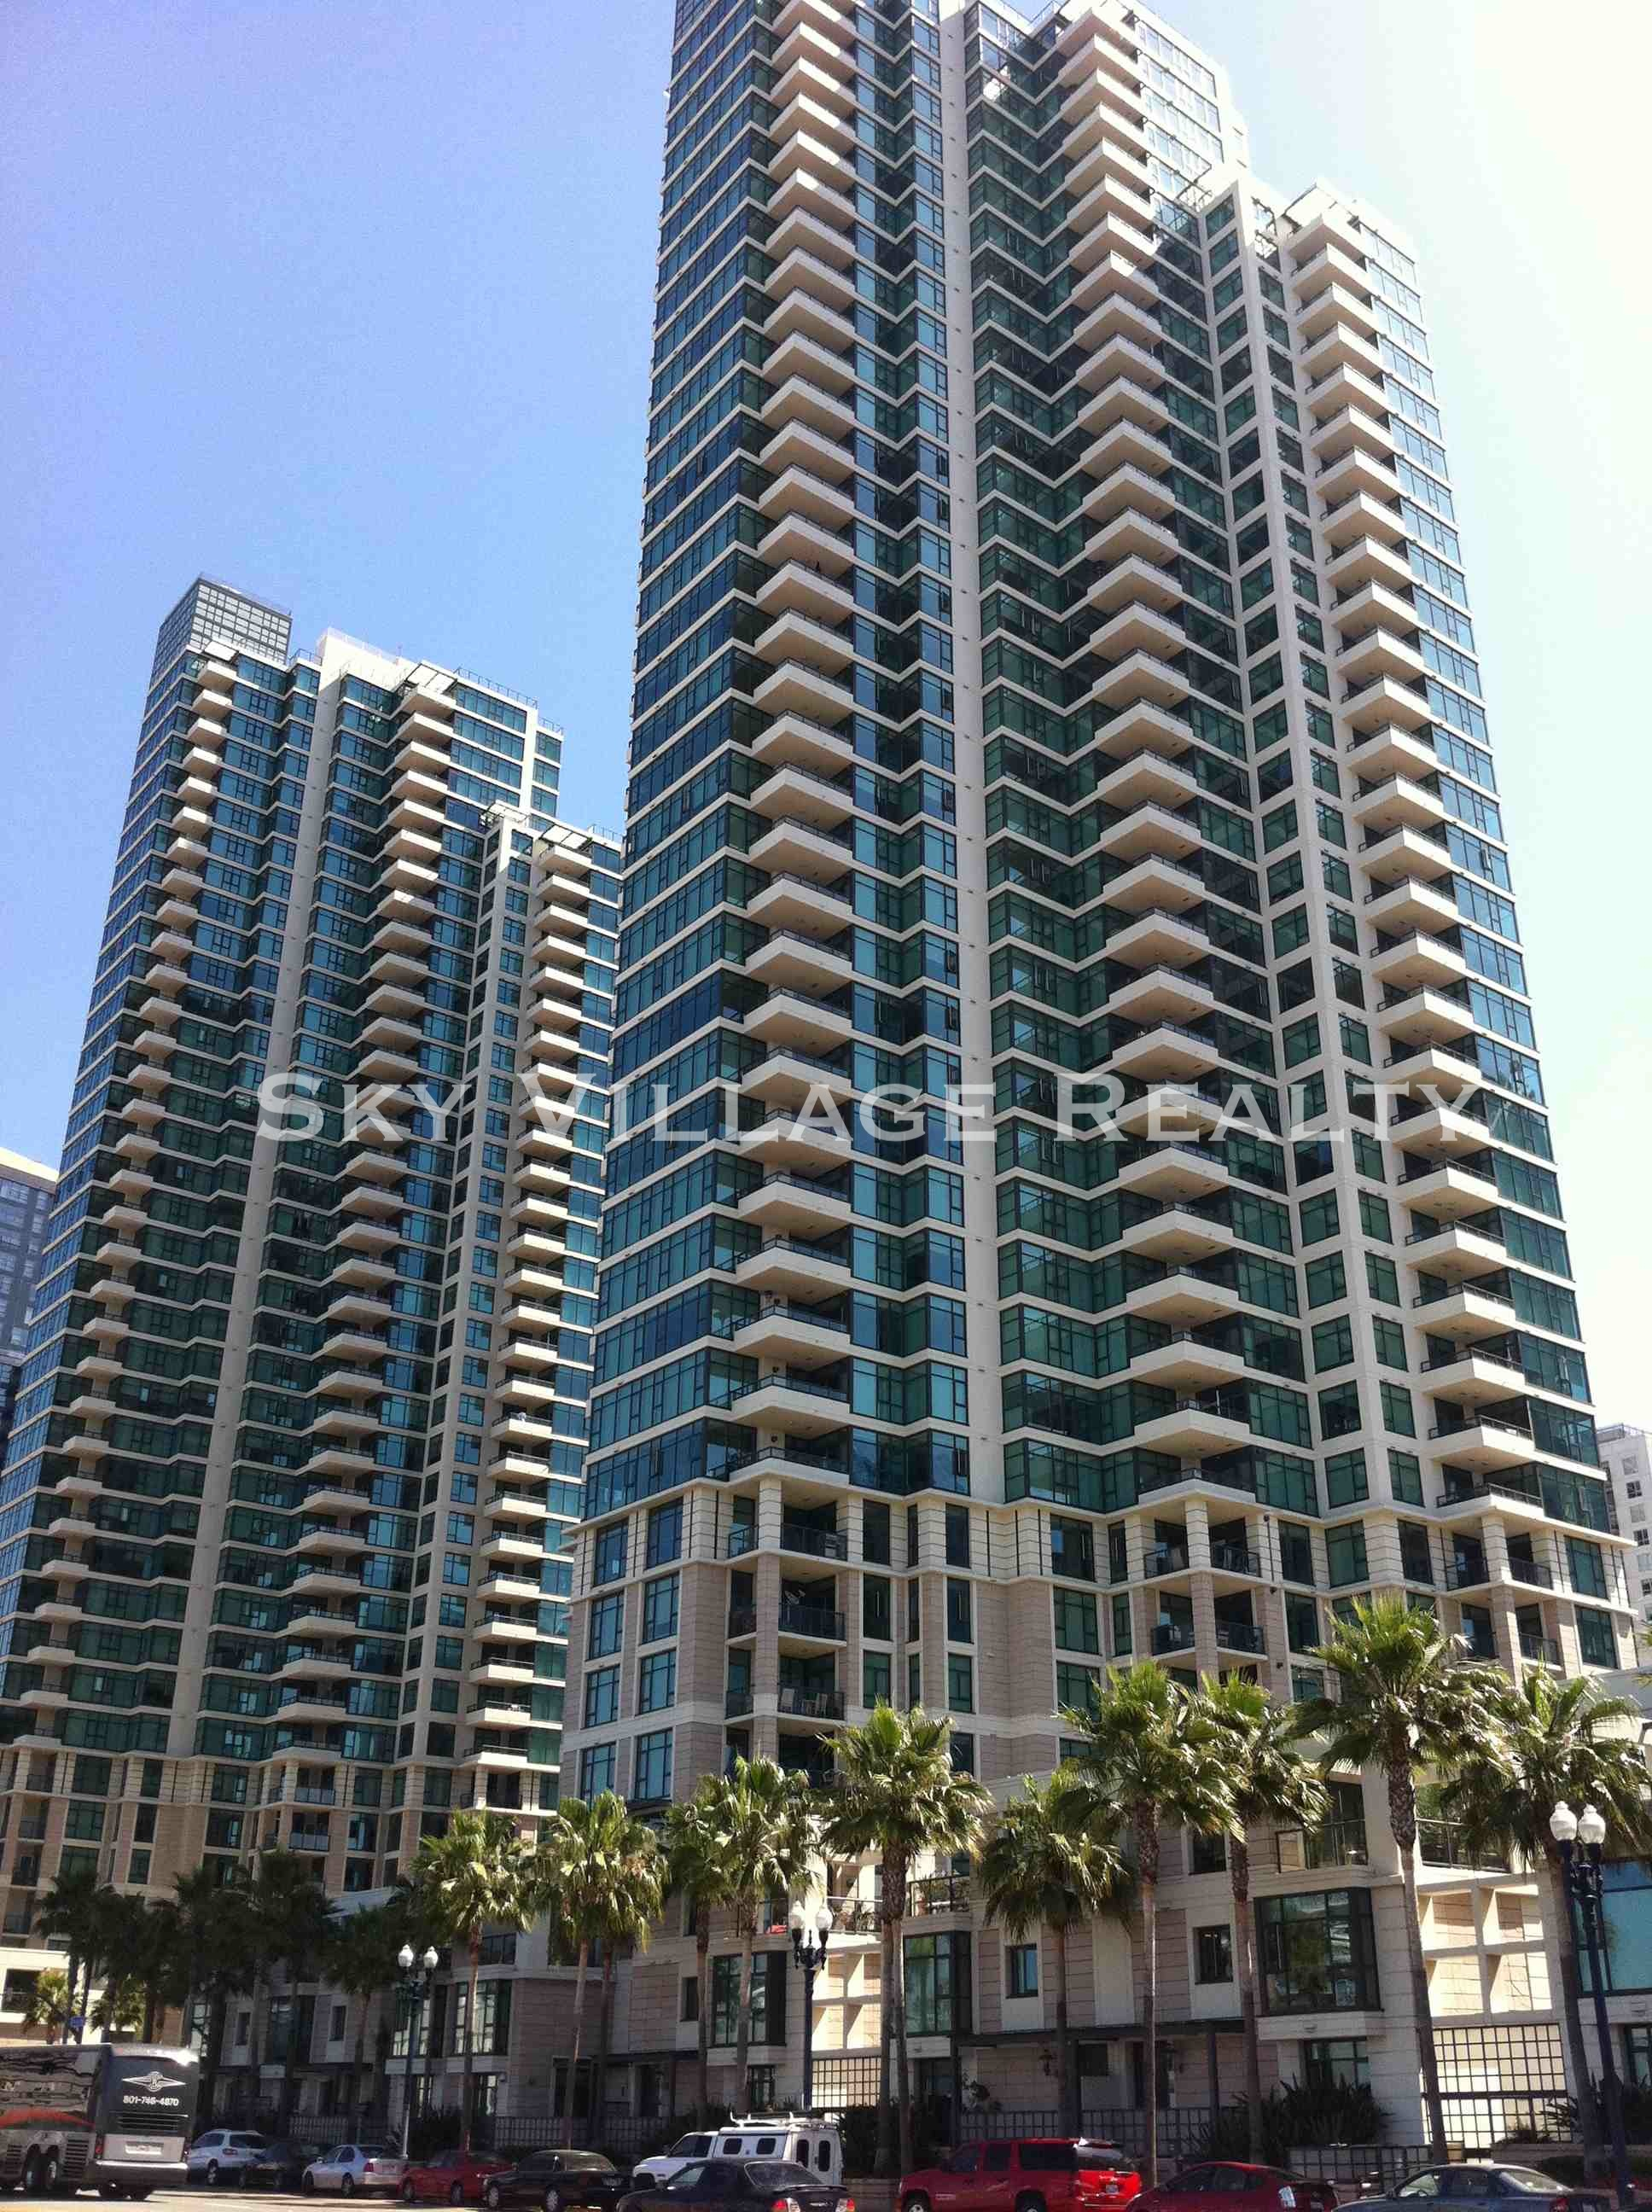 Downtown San Diego Apartment Complexes